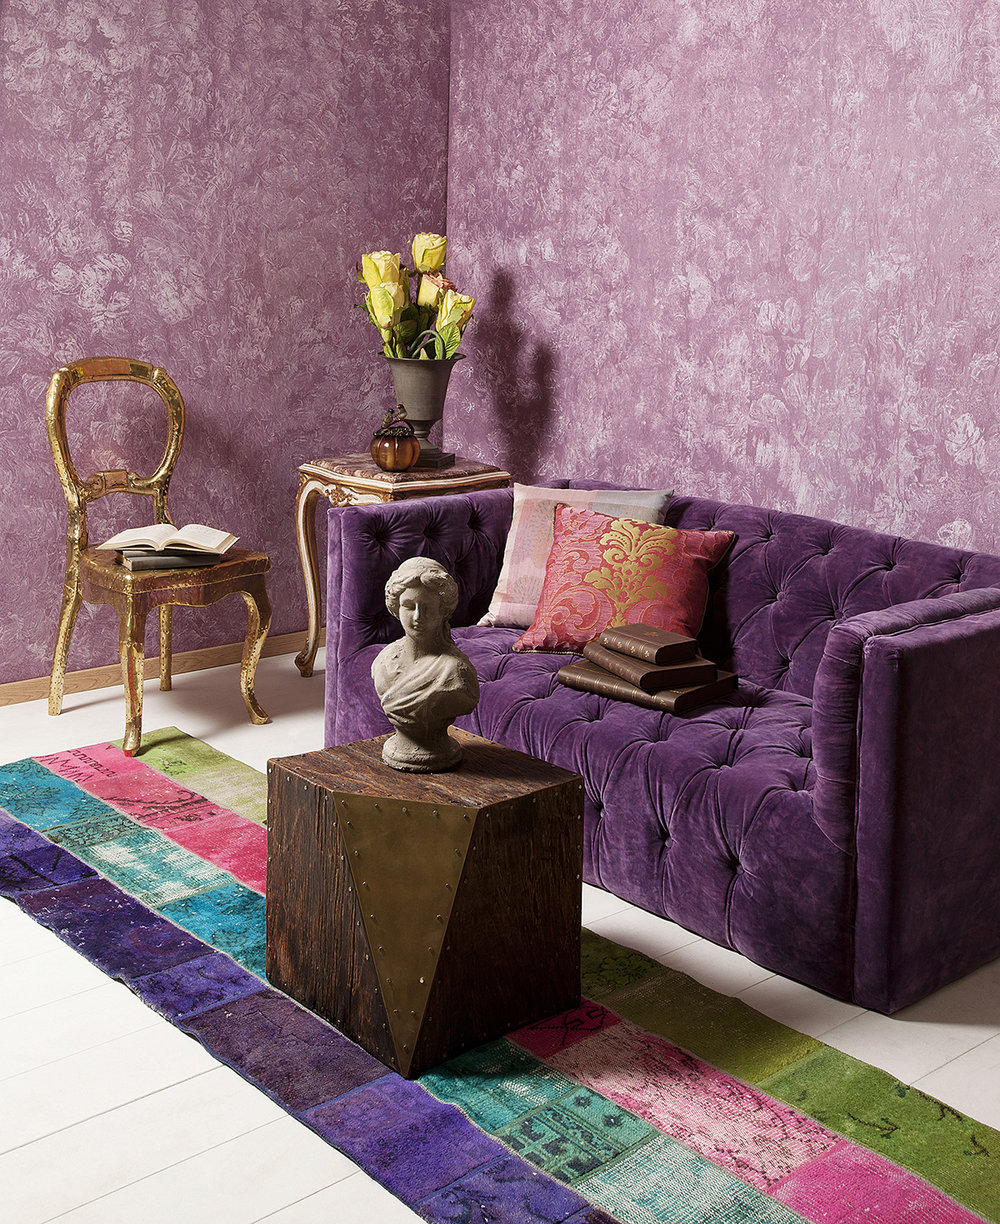 Wallpaper in a complementary color scheme can create a lovely accent wall